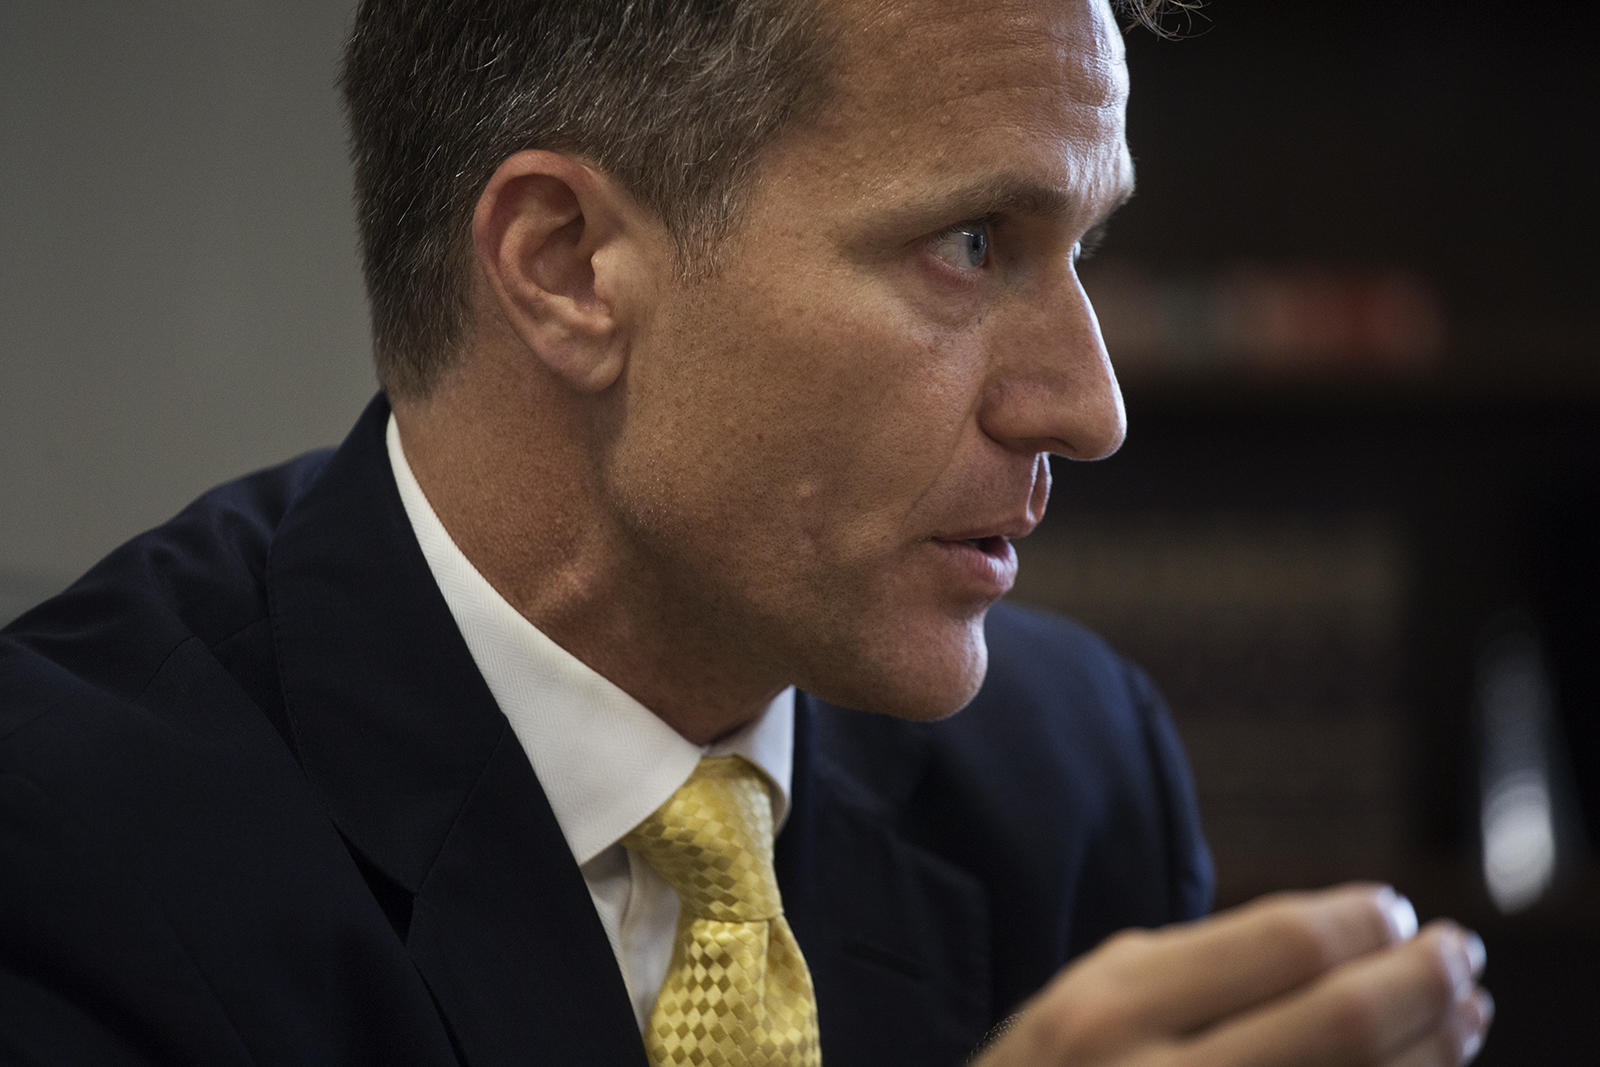 Missouri House Special Investigative Committee releases addendum to Greitens report